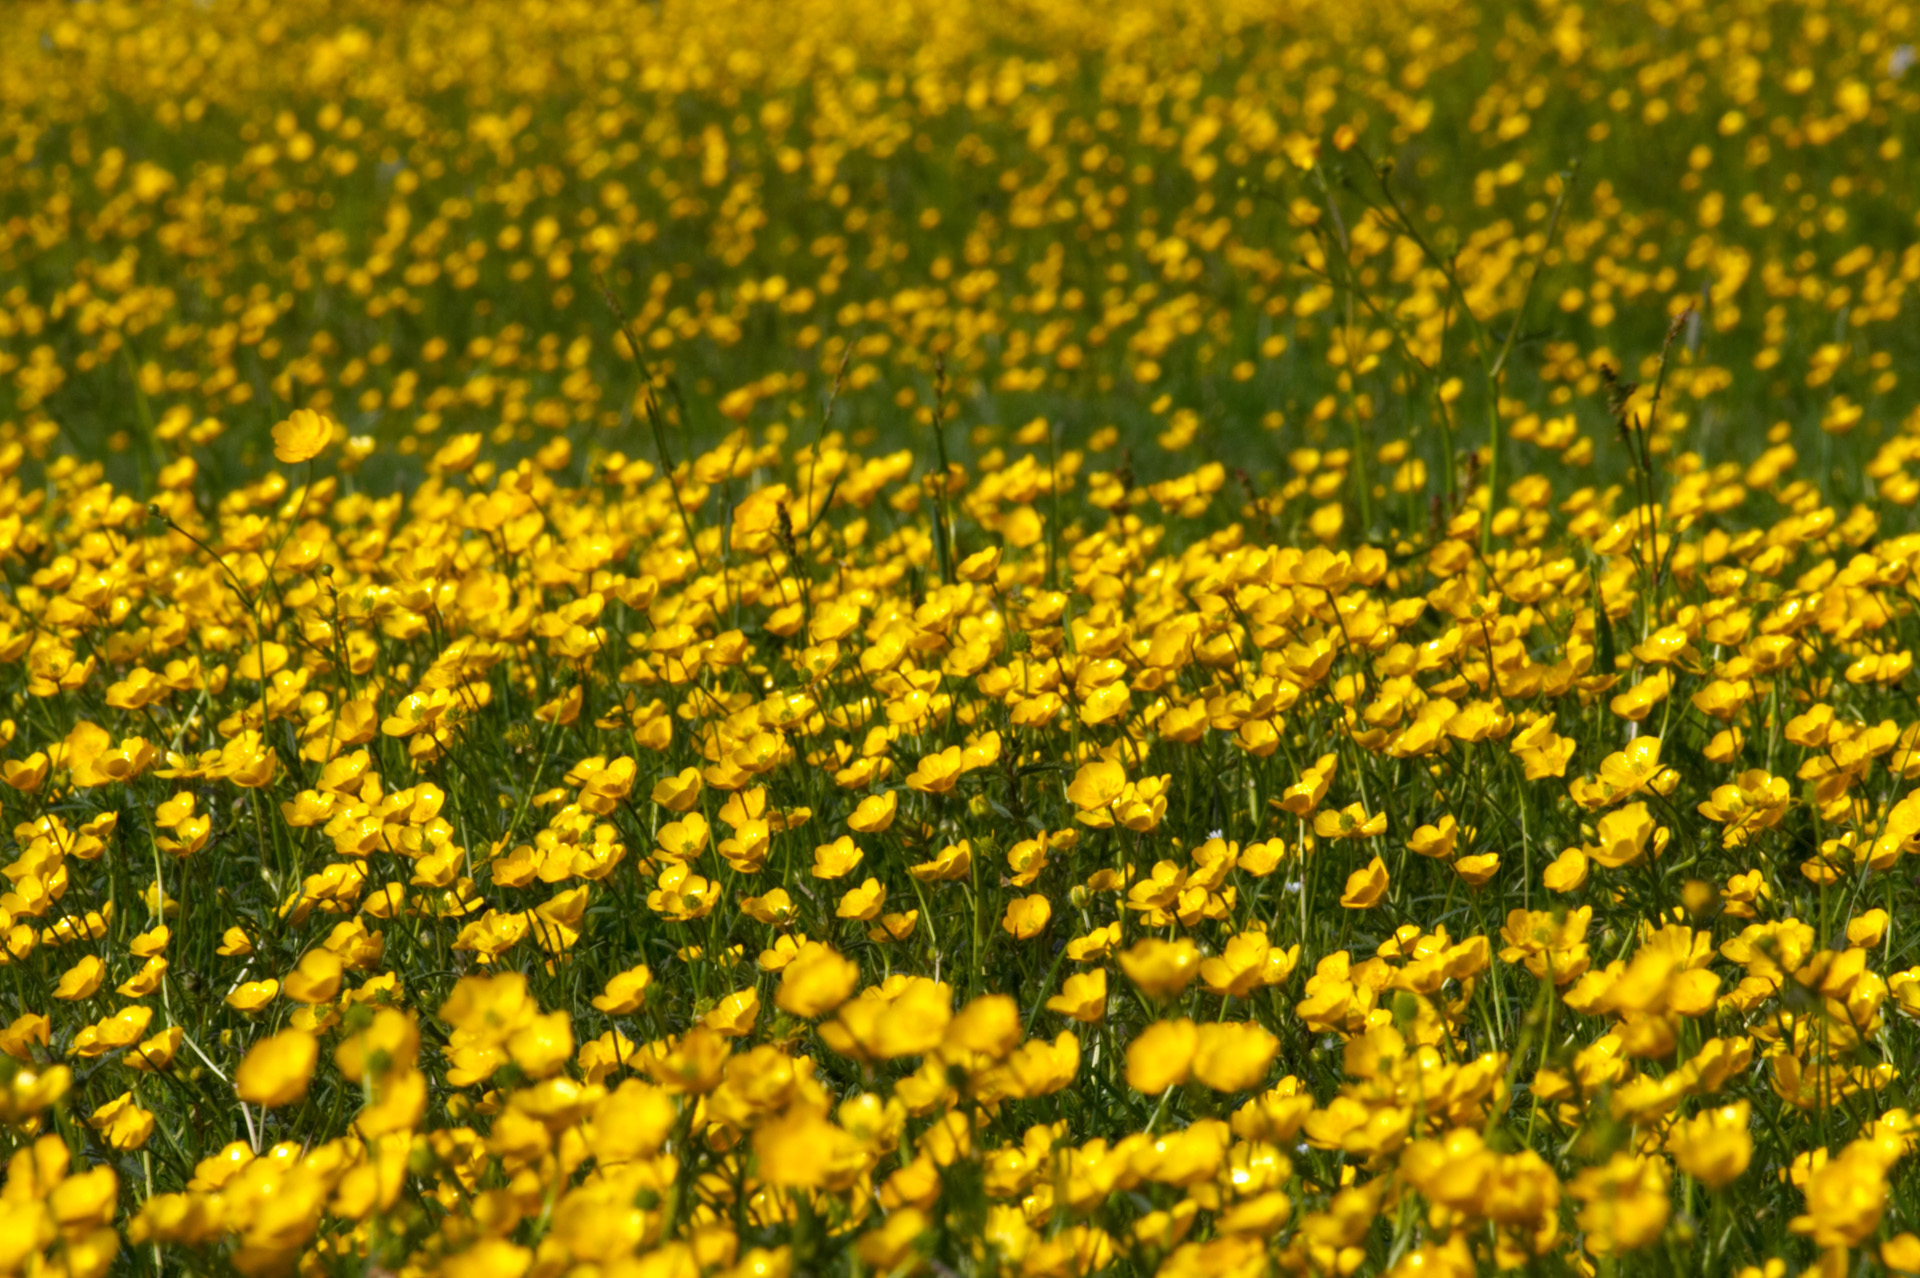 Buttercup Meadow at Wittenham Clumps